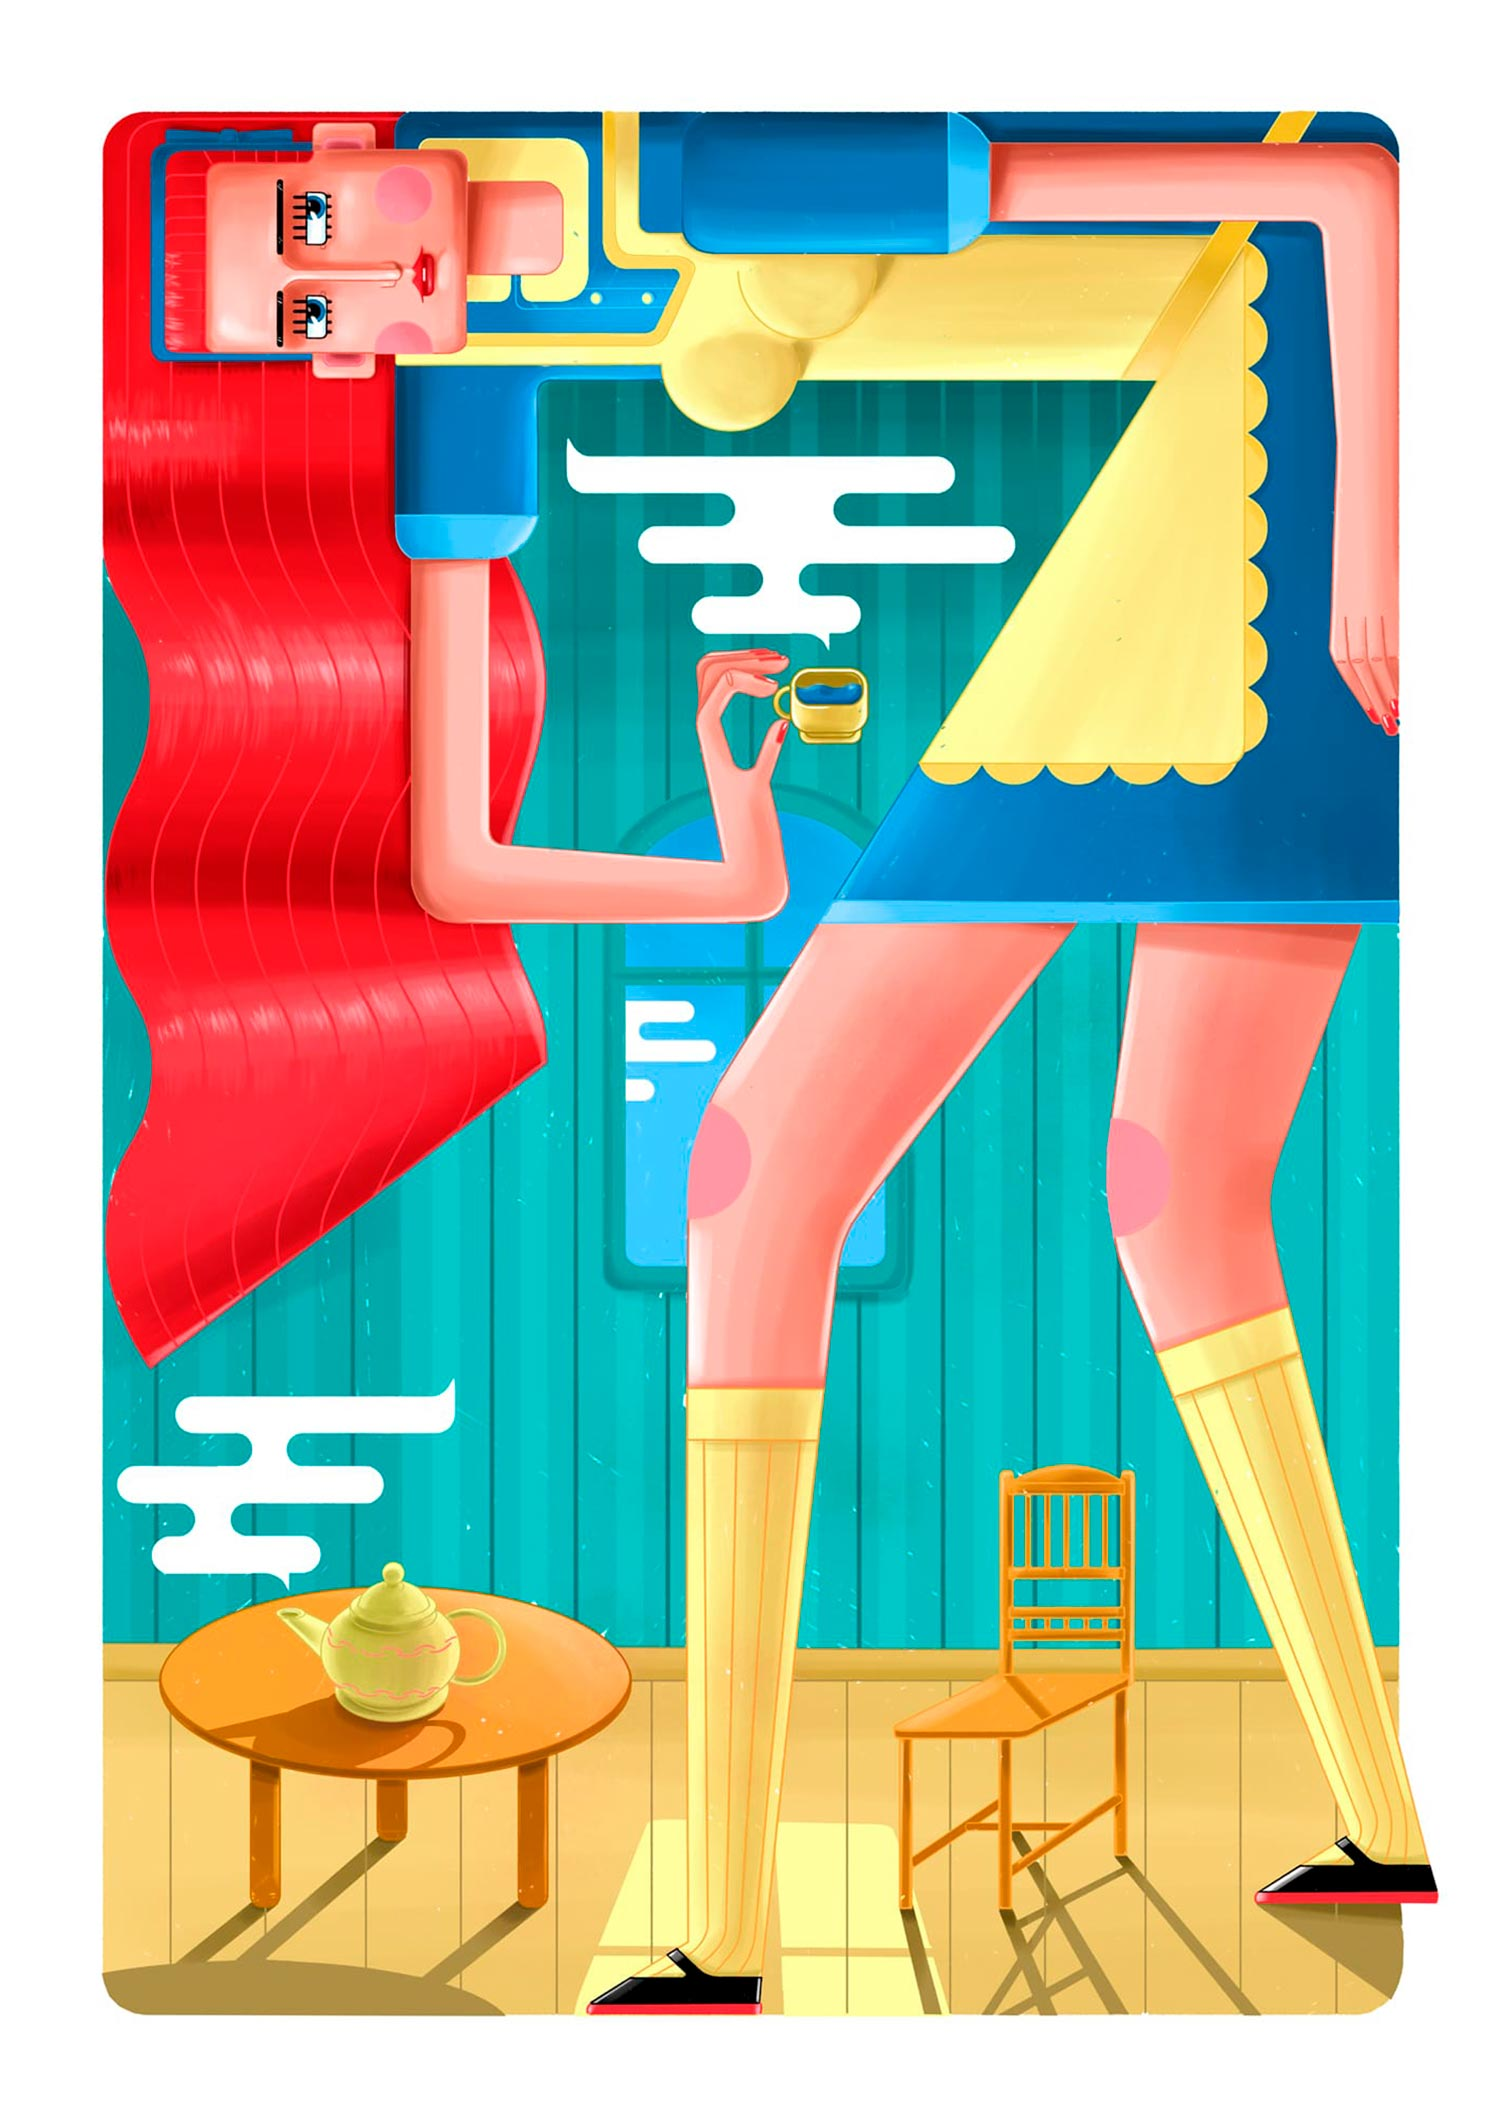 Alice - 'Tea with side effects' From a series of digital artworks with contemporary motives, inspired by icon paintings. Geometrically stylized illustration, colored using a reduced color palette.